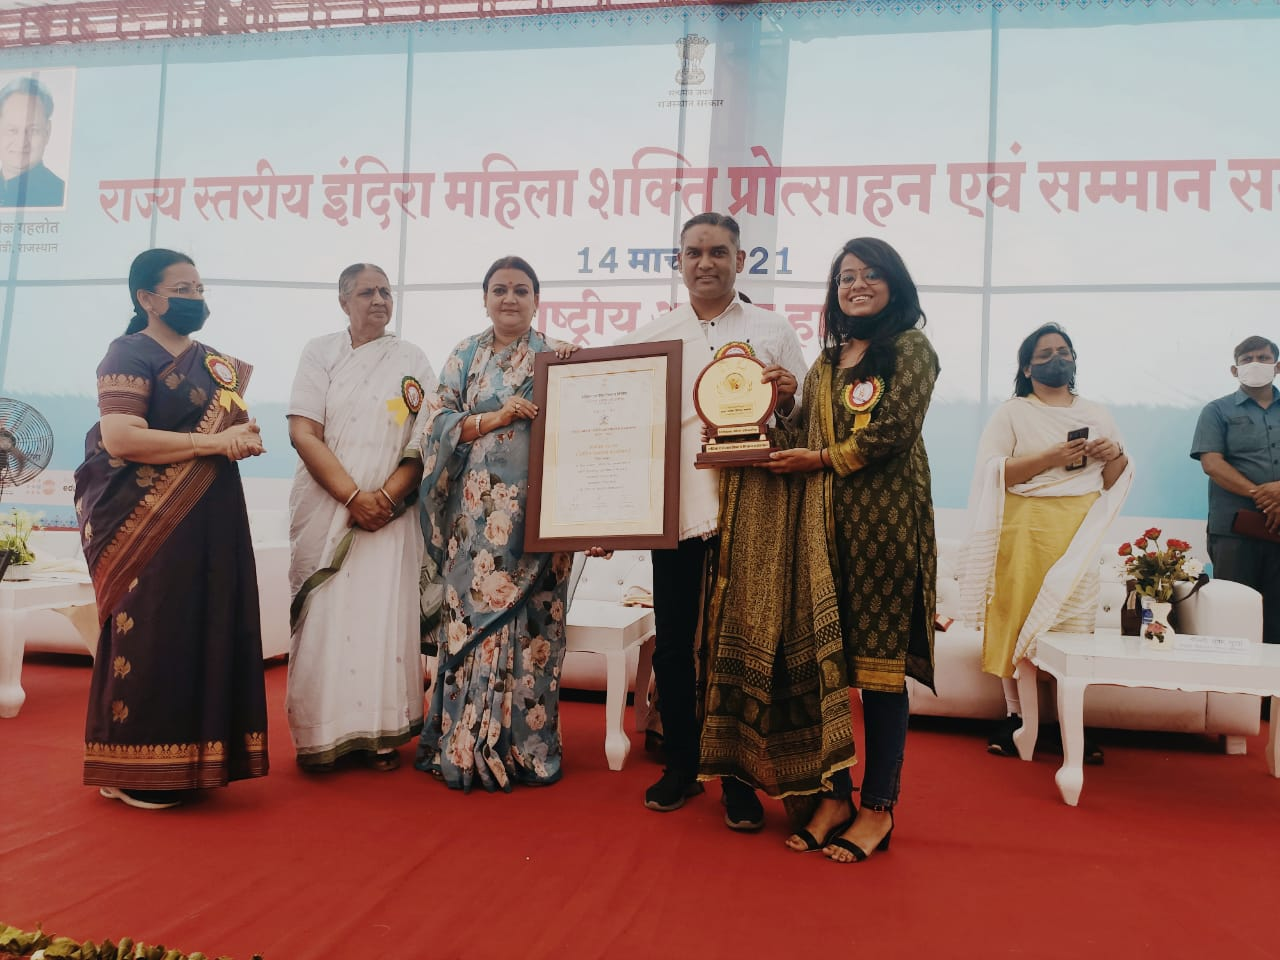 NAND GHAR CONFERRED WITH BEST CORPORATE SOCIAL RESPONSIBILITY INITIATIVE BY RAJASTHAN GOVERNMENT